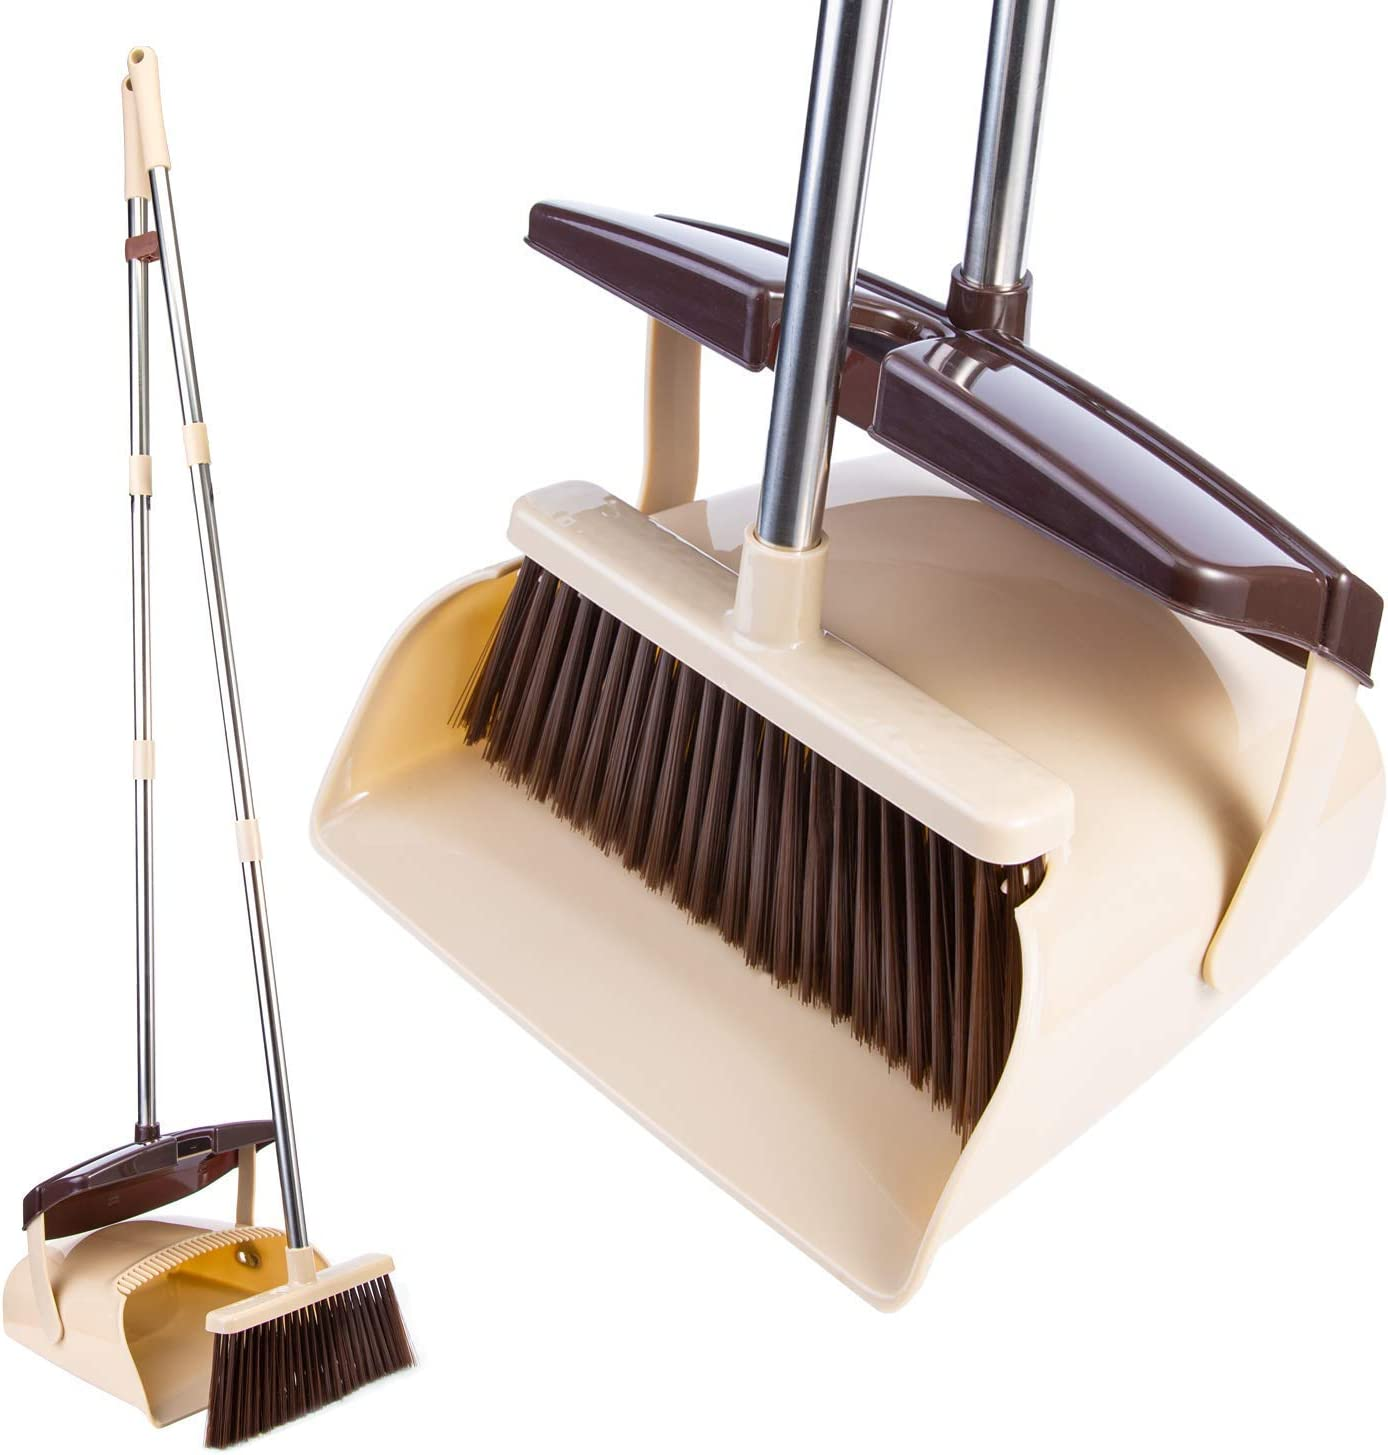 Broom and Dustpan Set with Lid Indoor Dust Pan 3 Foot Angle Heavy Push Combo Kids Garden Pet Dog Hair Wood Upright Long Stainless Steel Handle Sweeping Kitchen House Floor Room Office